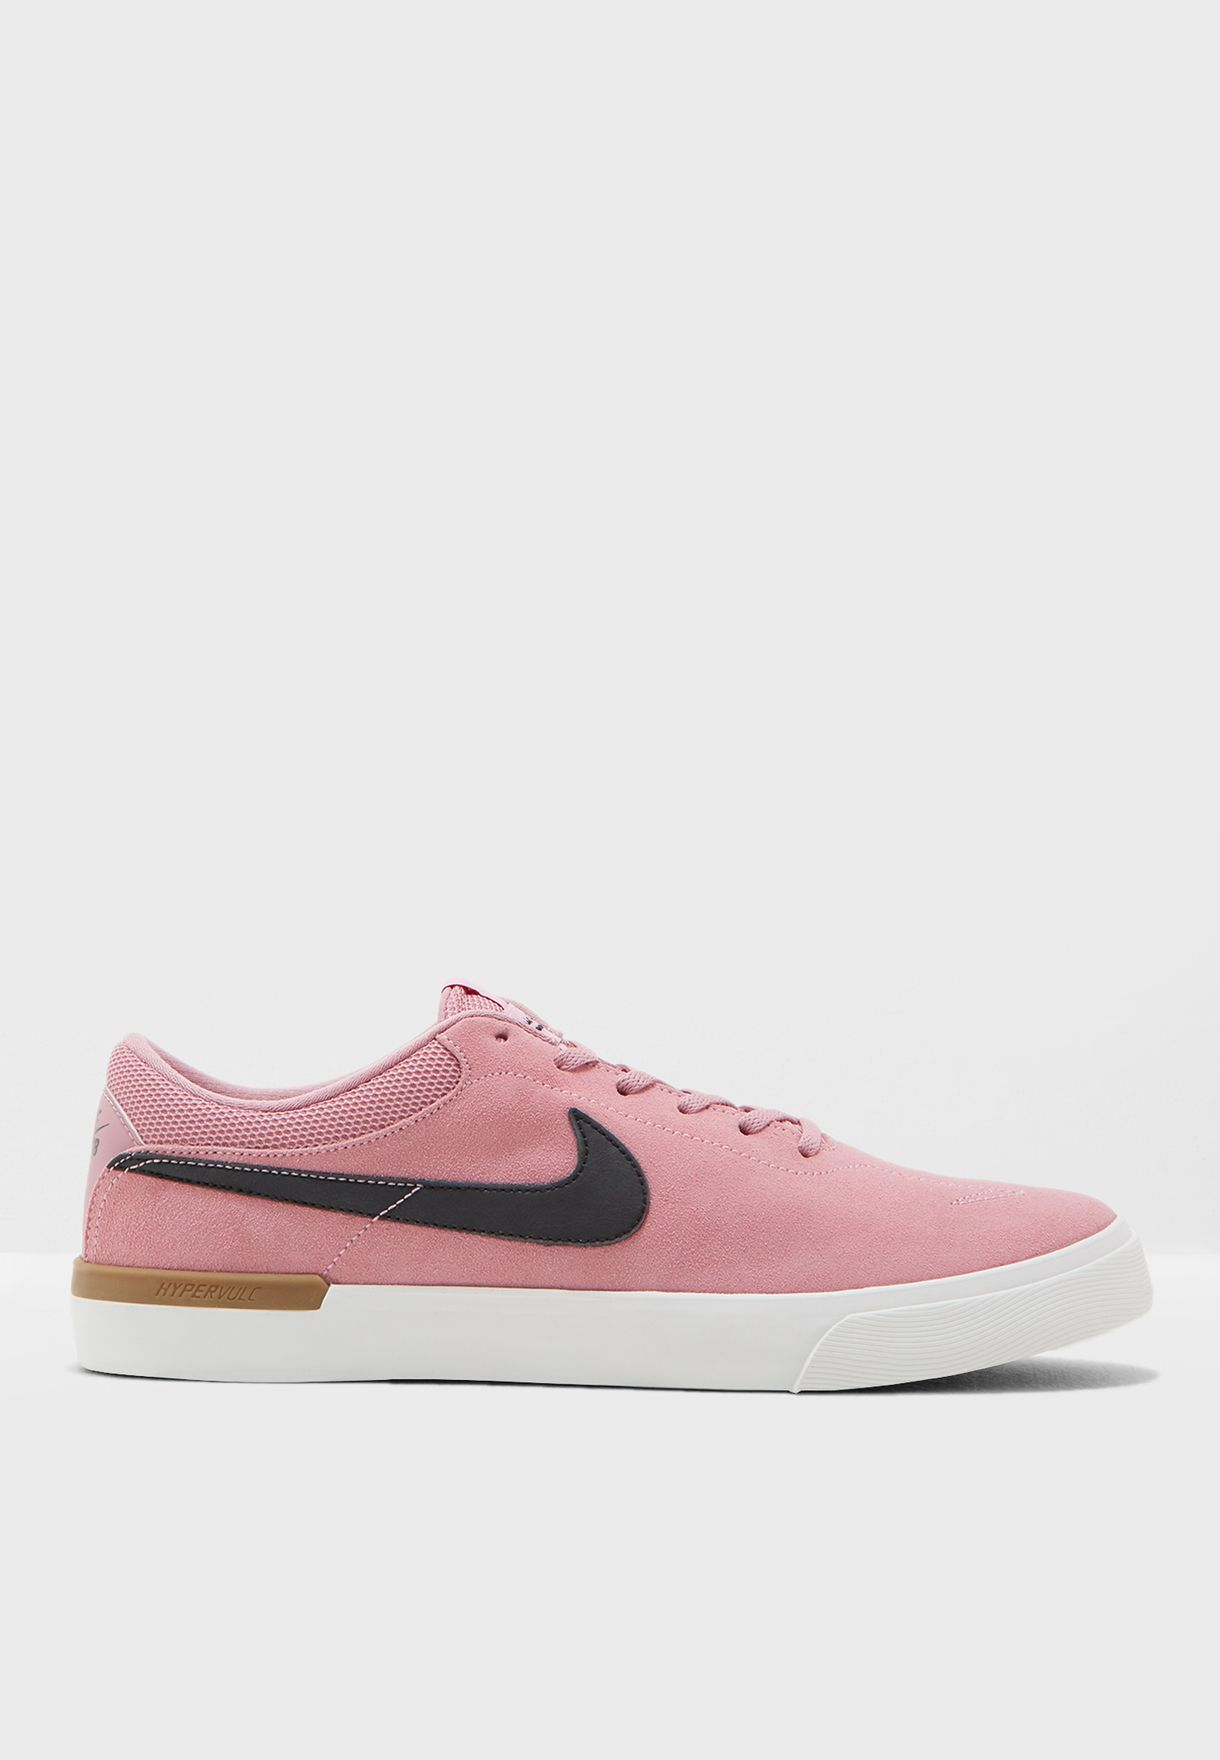 34937c9b335b Shop Nike pink SB Koston Hypervulc 844447-600 for Men in Saudi ...